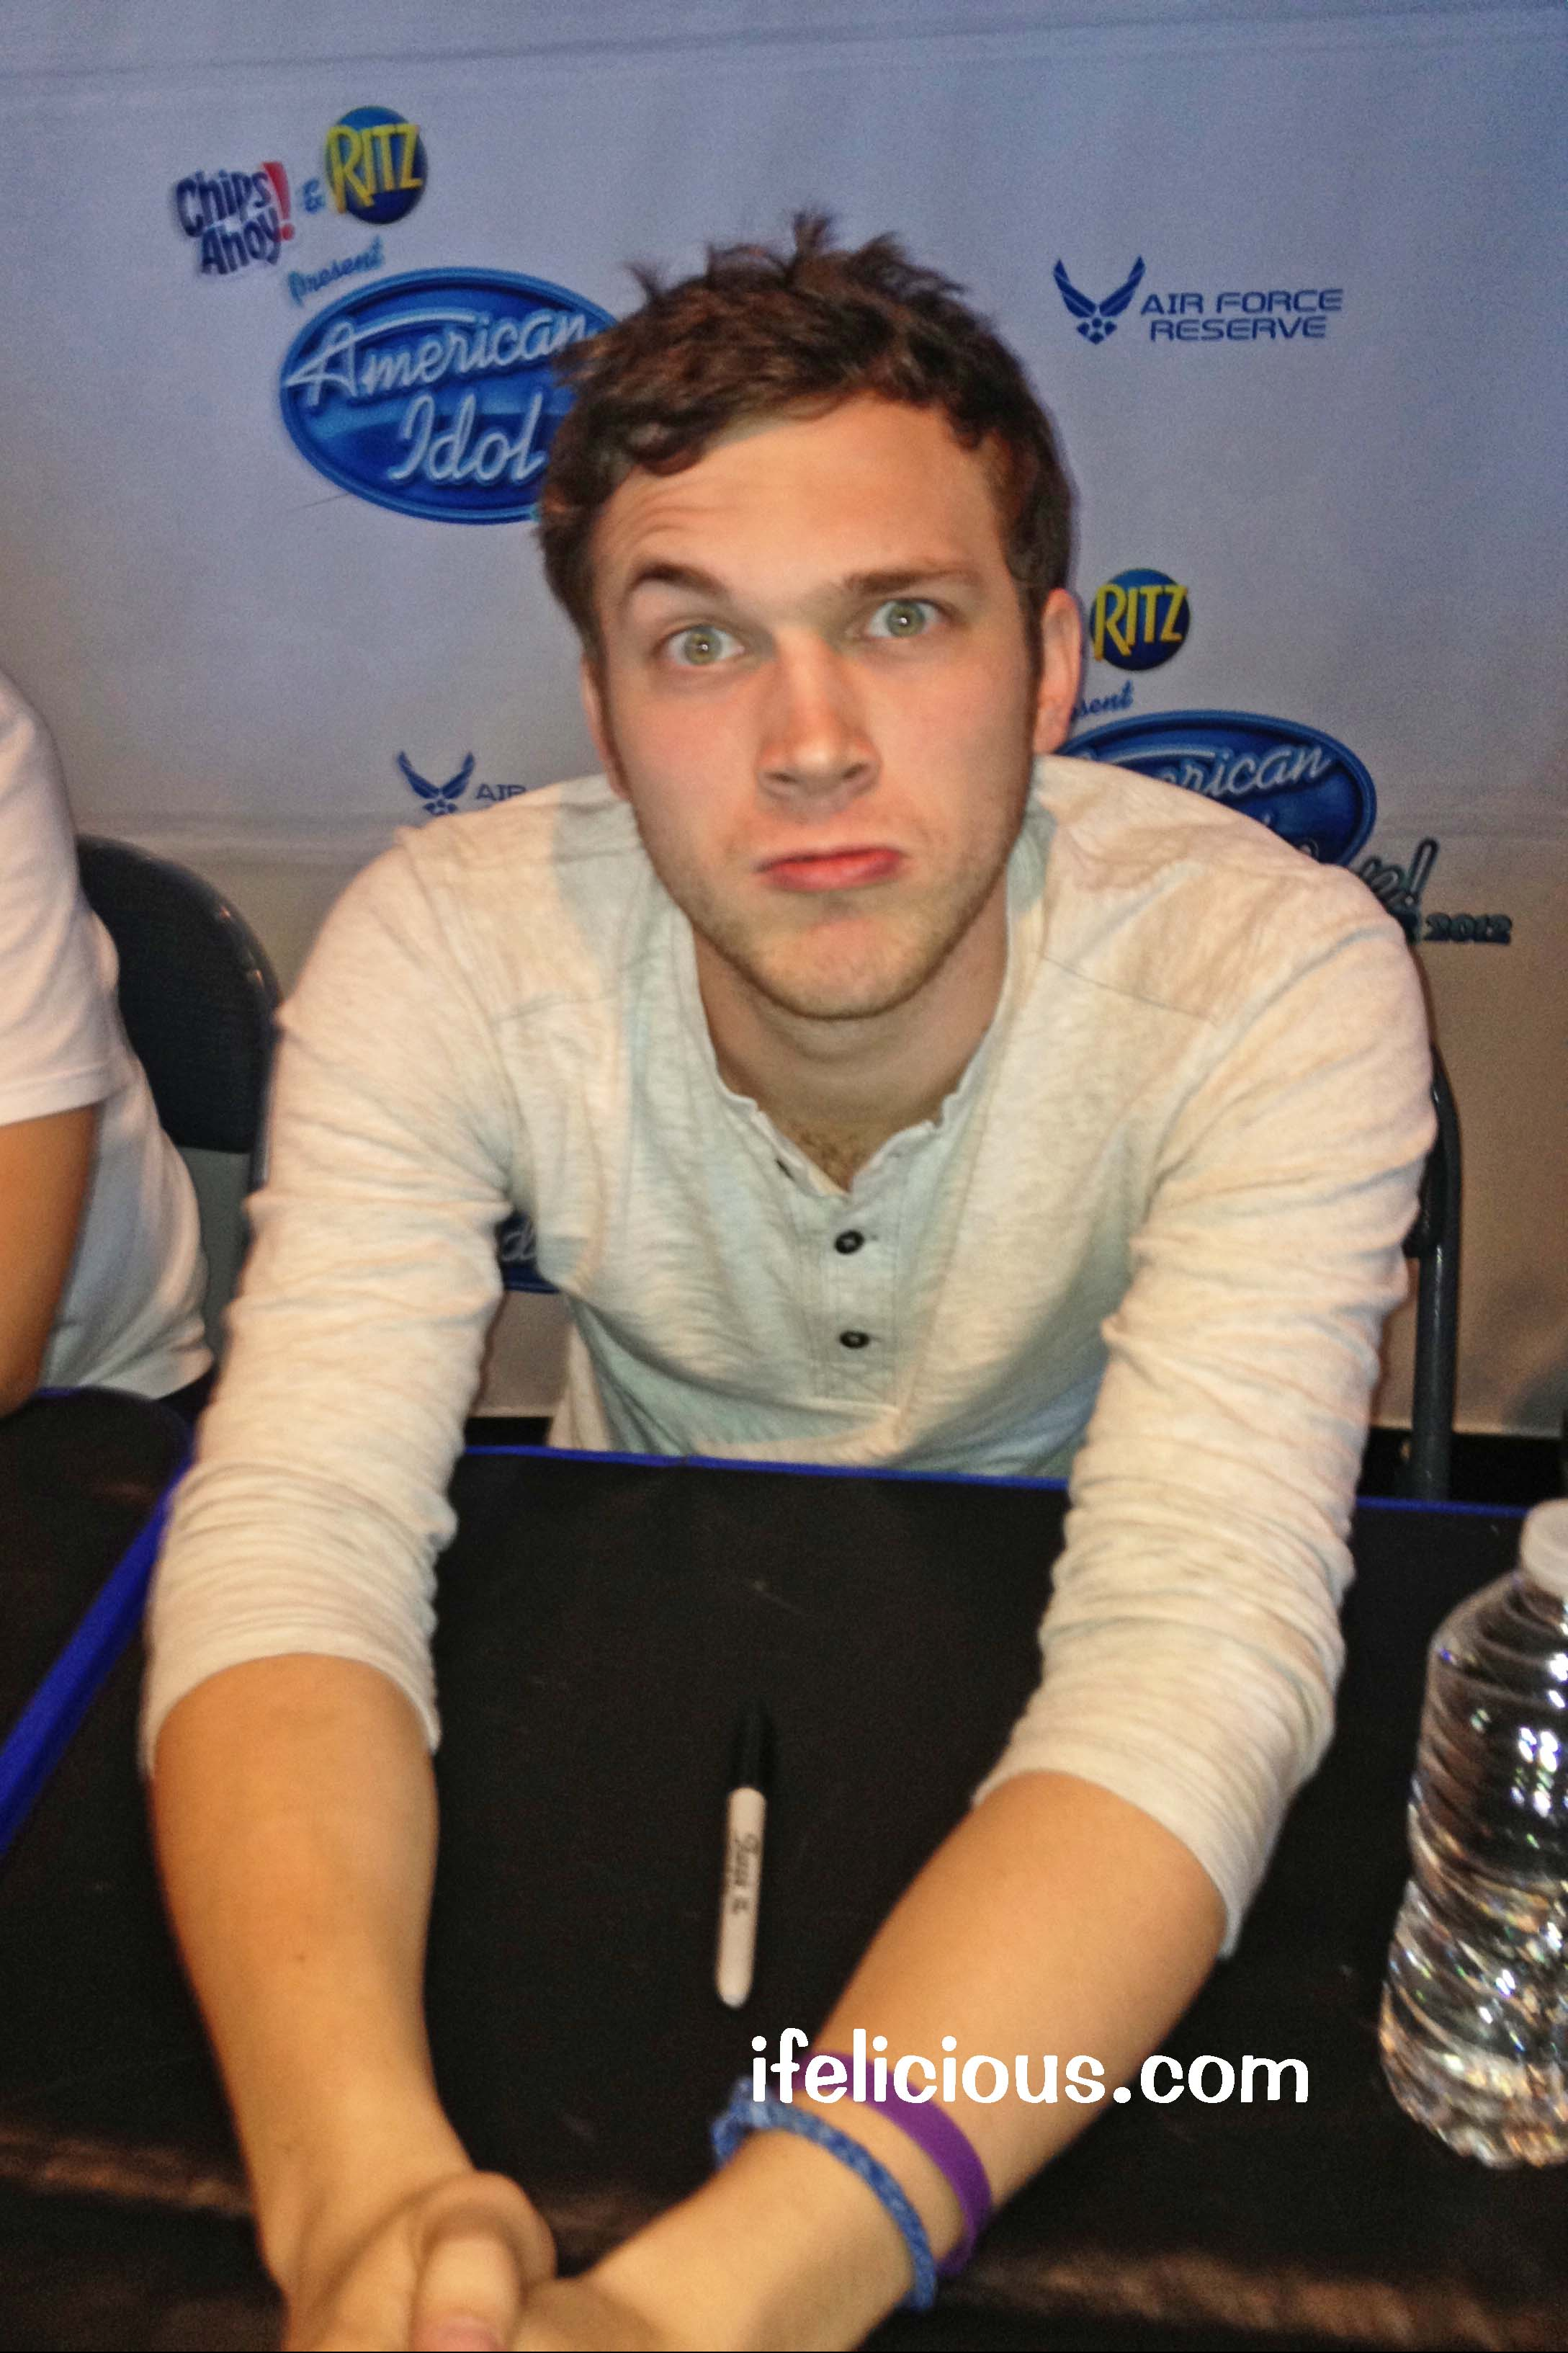 Ai meetgreet phillipphillips ver20293 american idol tour 2012 milwaukee phillip phillips m4hsunfo